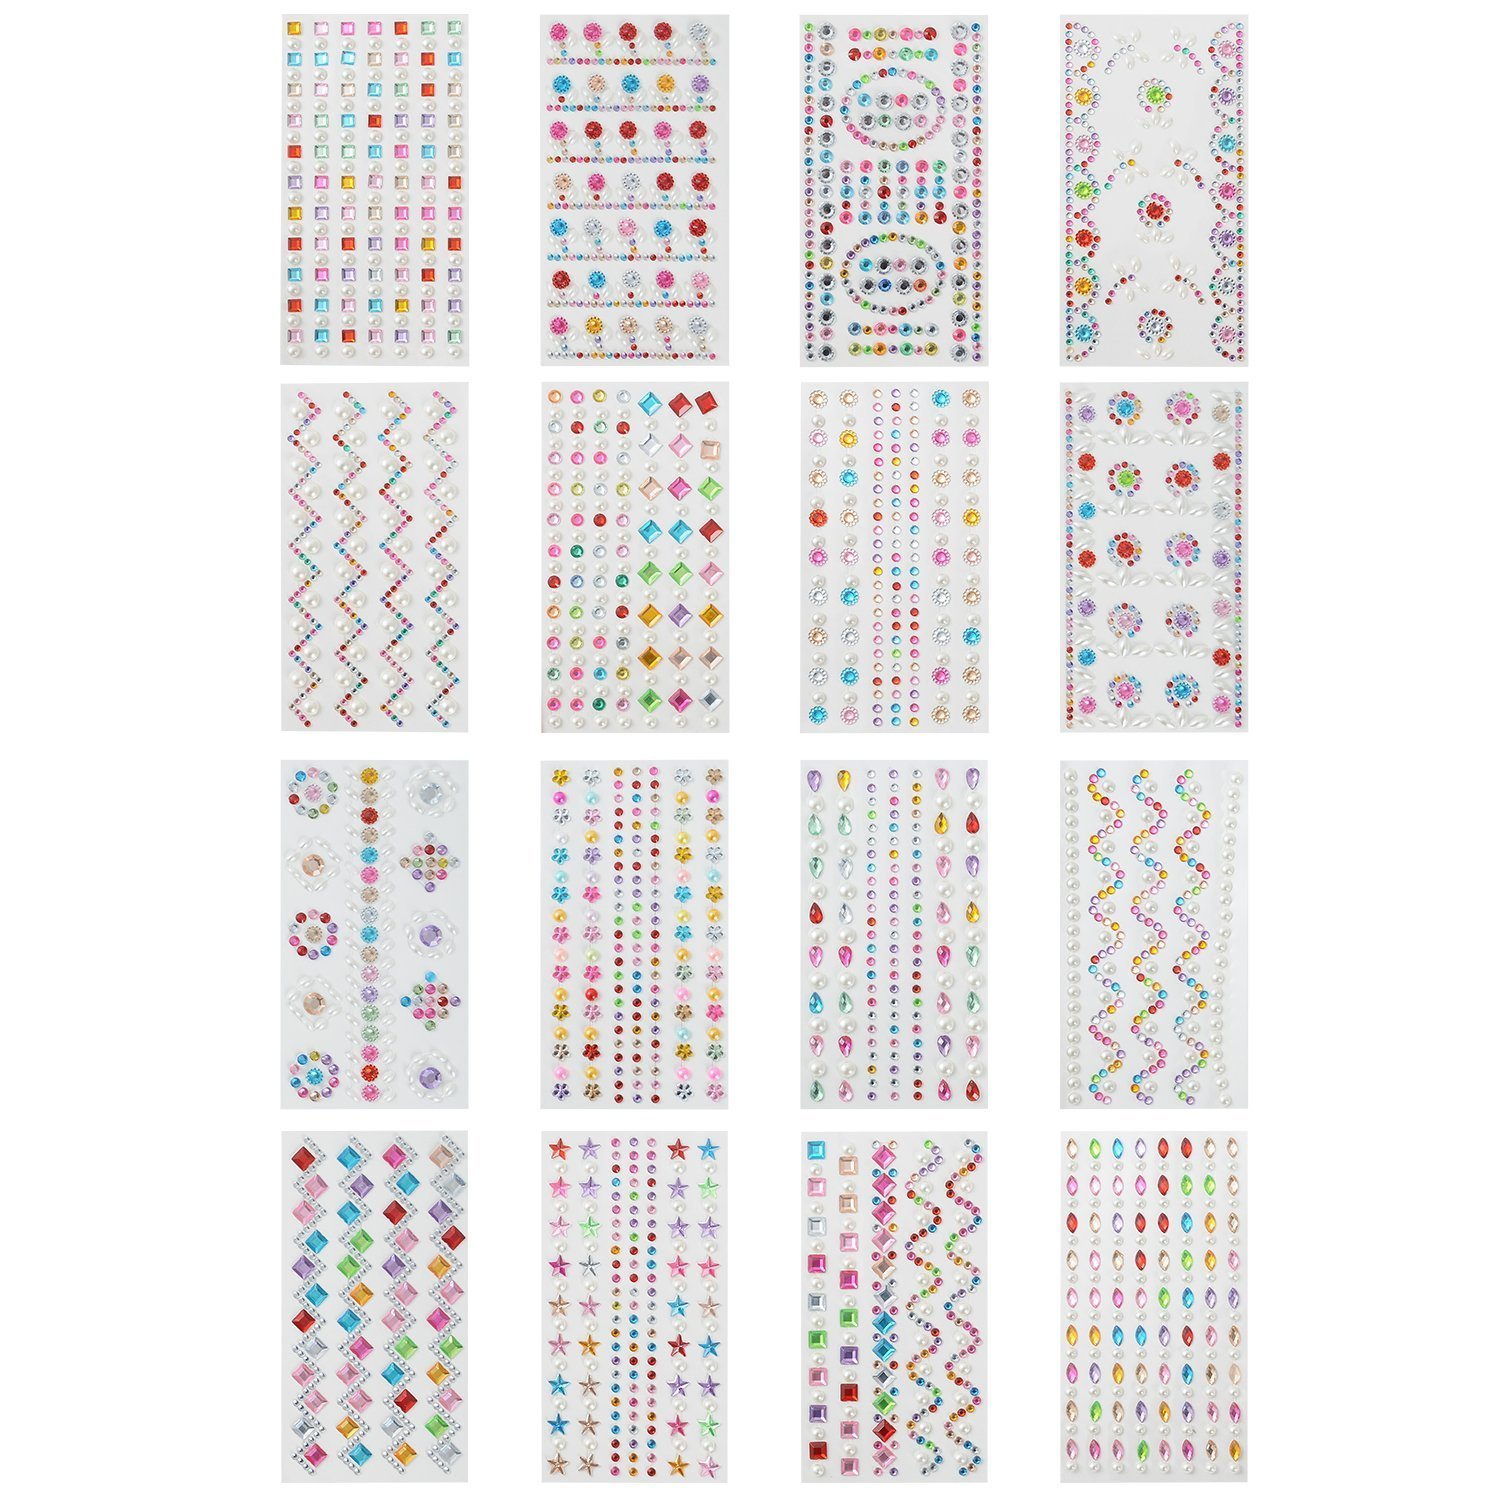 Assorted Size-16 Patterns YUEAON 16 Pack Different Designs Colorful Rhinestone Stickers Self Adhesive Bling Craft Jewel gem Diamond Sticker Embellishments